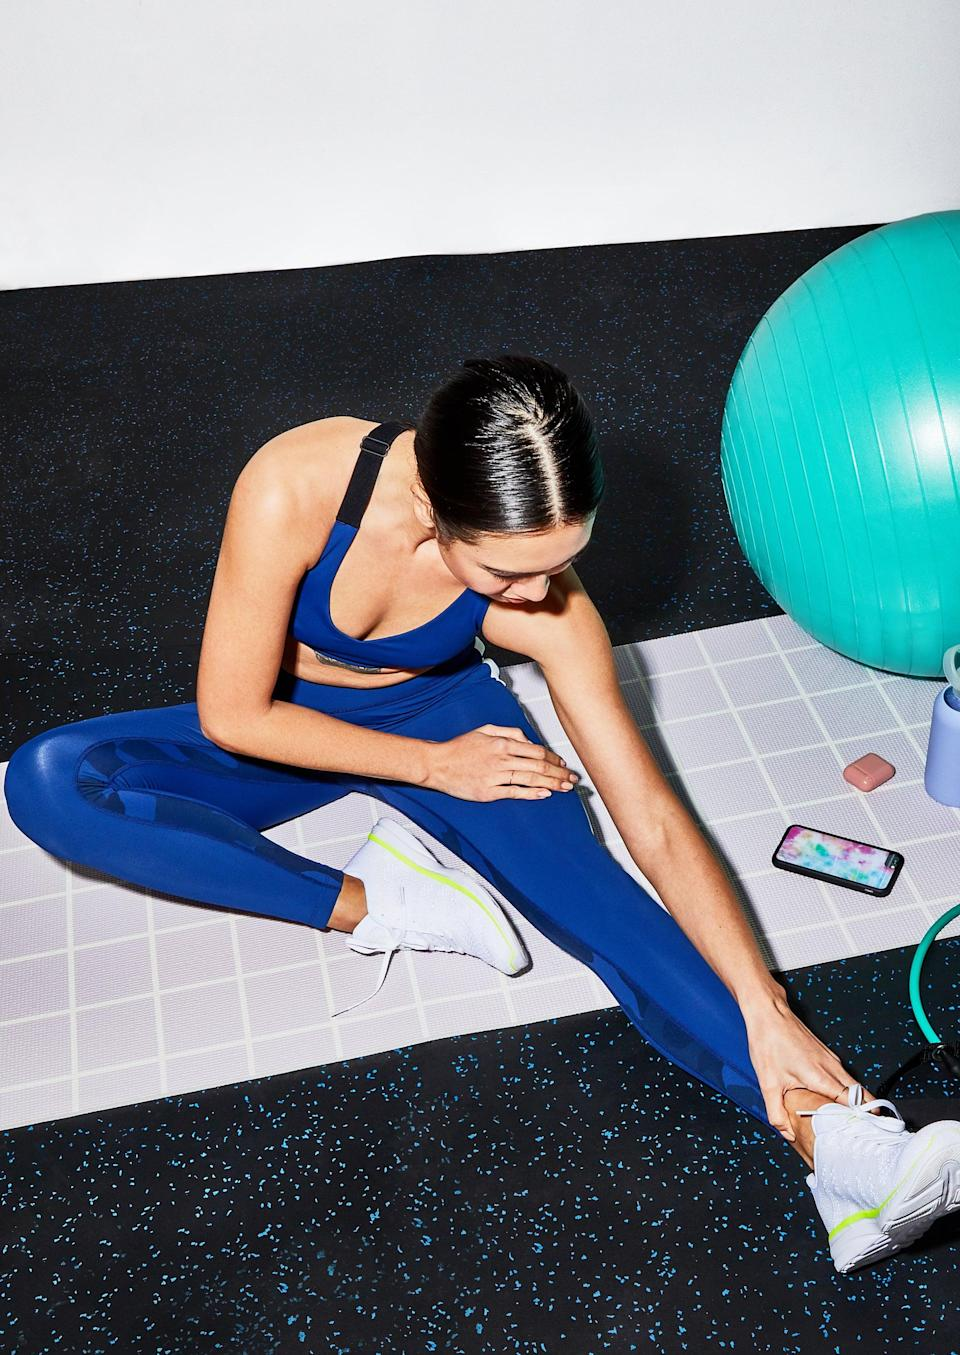 """<p>You're already halfway through the week, so it's time for some recovery. <a href=""""https://www.popsugar.com/fitness/How-Foam-Roll-43984305"""" class=""""link rapid-noclick-resp"""" rel=""""nofollow noopener"""" target=""""_blank"""" data-ylk=""""slk:Foam roll"""">Foam roll</a> for 10 minutes. If you're feeling sore, we suggest taking an <a href=""""https://www.popsugar.com/fitness/do-epsom-salt-baths-work-47532349"""" class=""""link rapid-noclick-resp"""" rel=""""nofollow noopener"""" target=""""_blank"""" data-ylk=""""slk:Epsom salt bath"""">Epsom salt bath</a>. Be sure to hydrate during and after.</p>"""